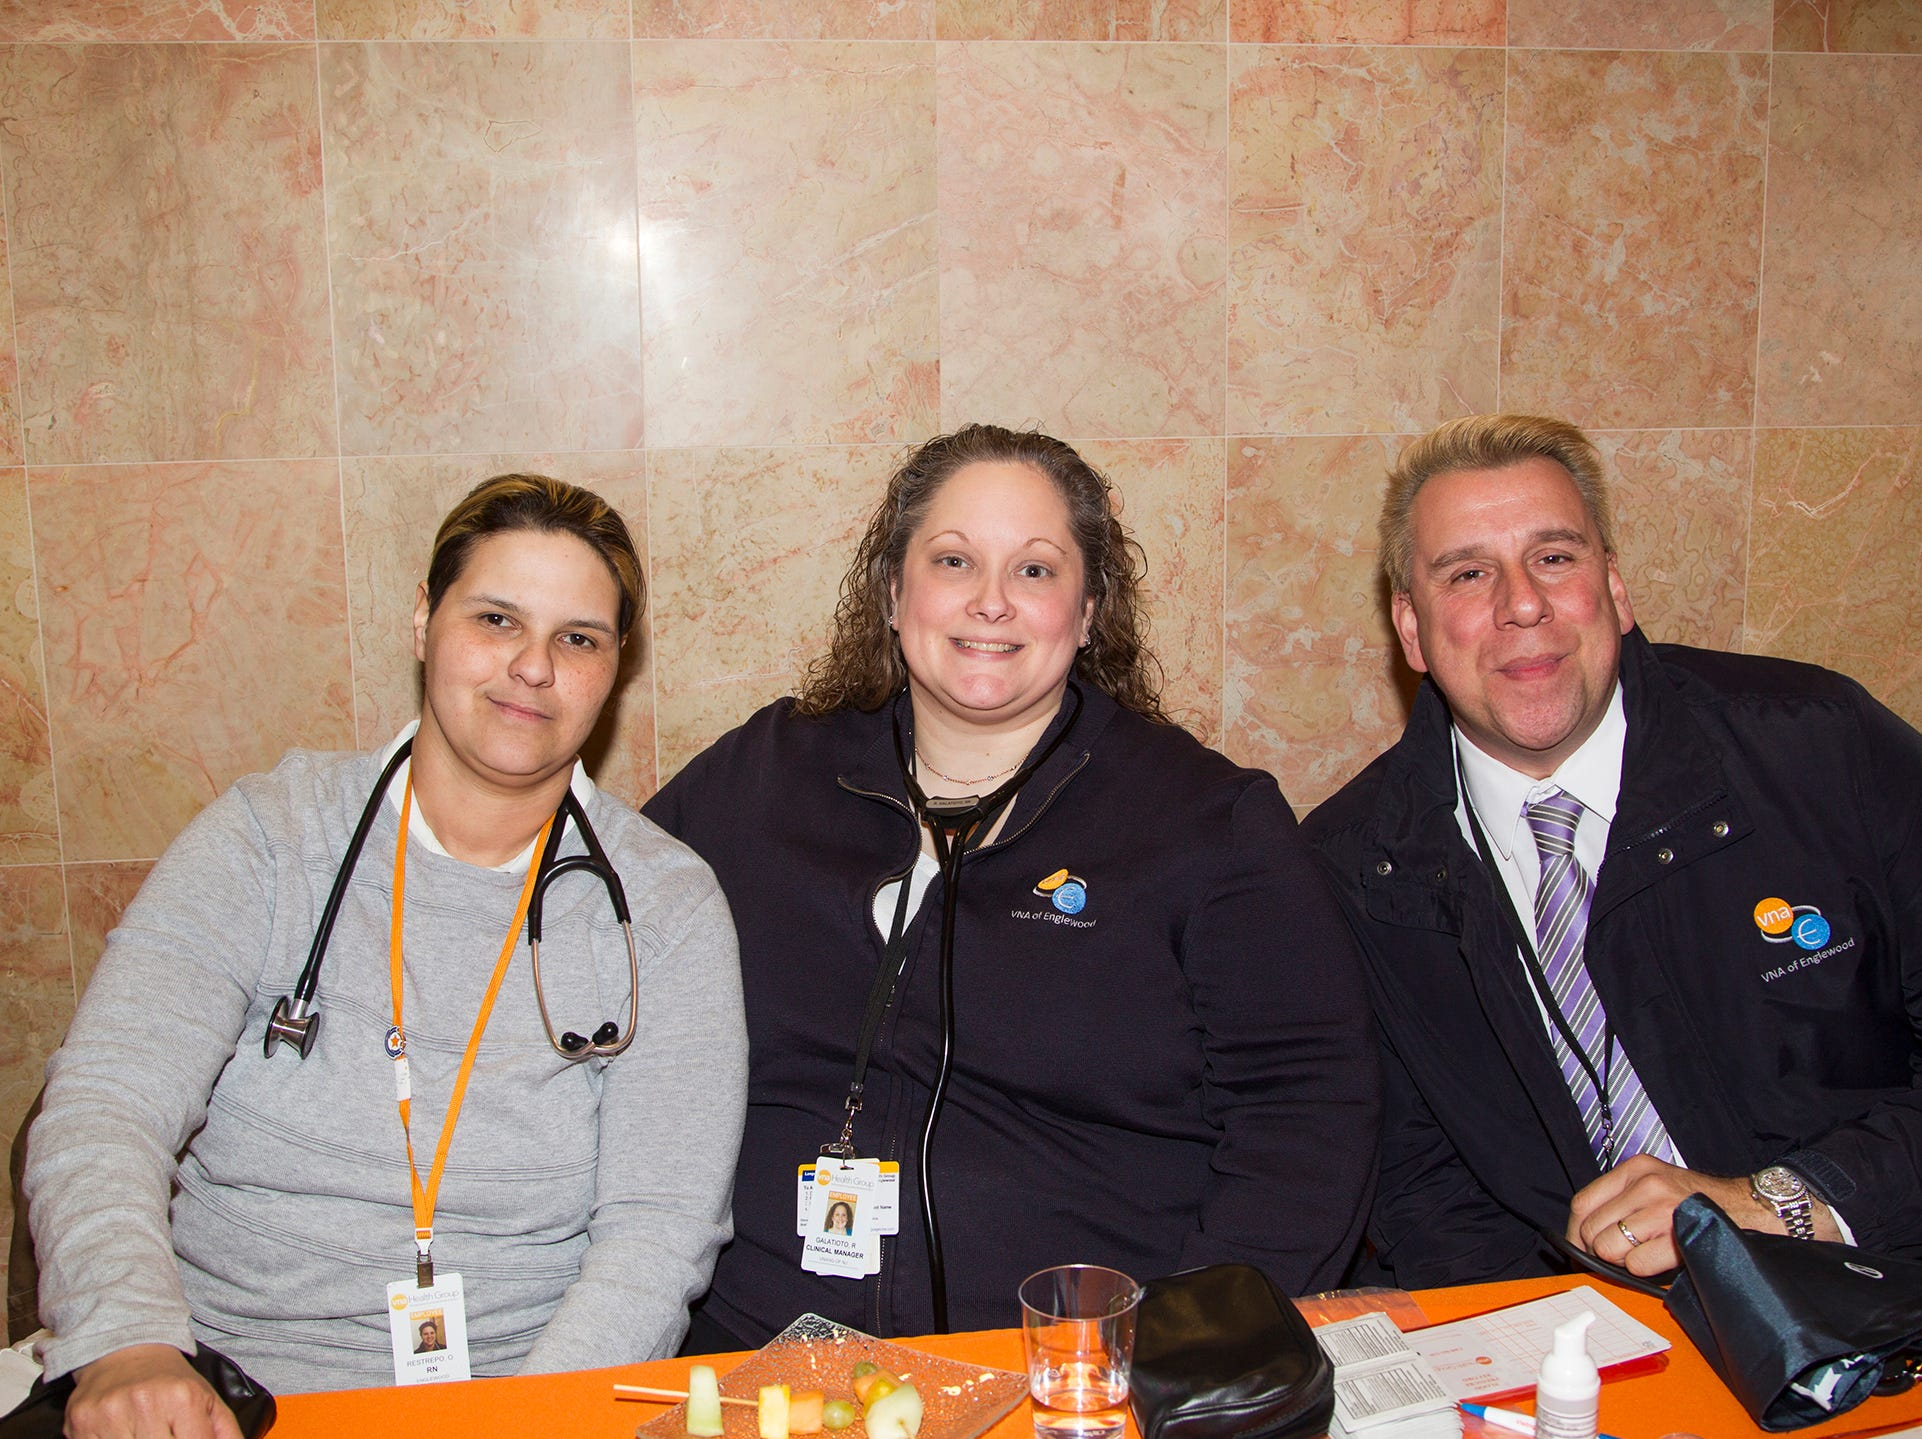 Oriana Restrepo RN, Renee Galatioto RN, Bill Ioannou Business Development. Englewood Health and Kaplen JCC on the Palisades sponsored a Mind, Body, & Sole - a women's health & fitness social night at Kaplen JCC on the Palisades in Tenafly.02/13/2019